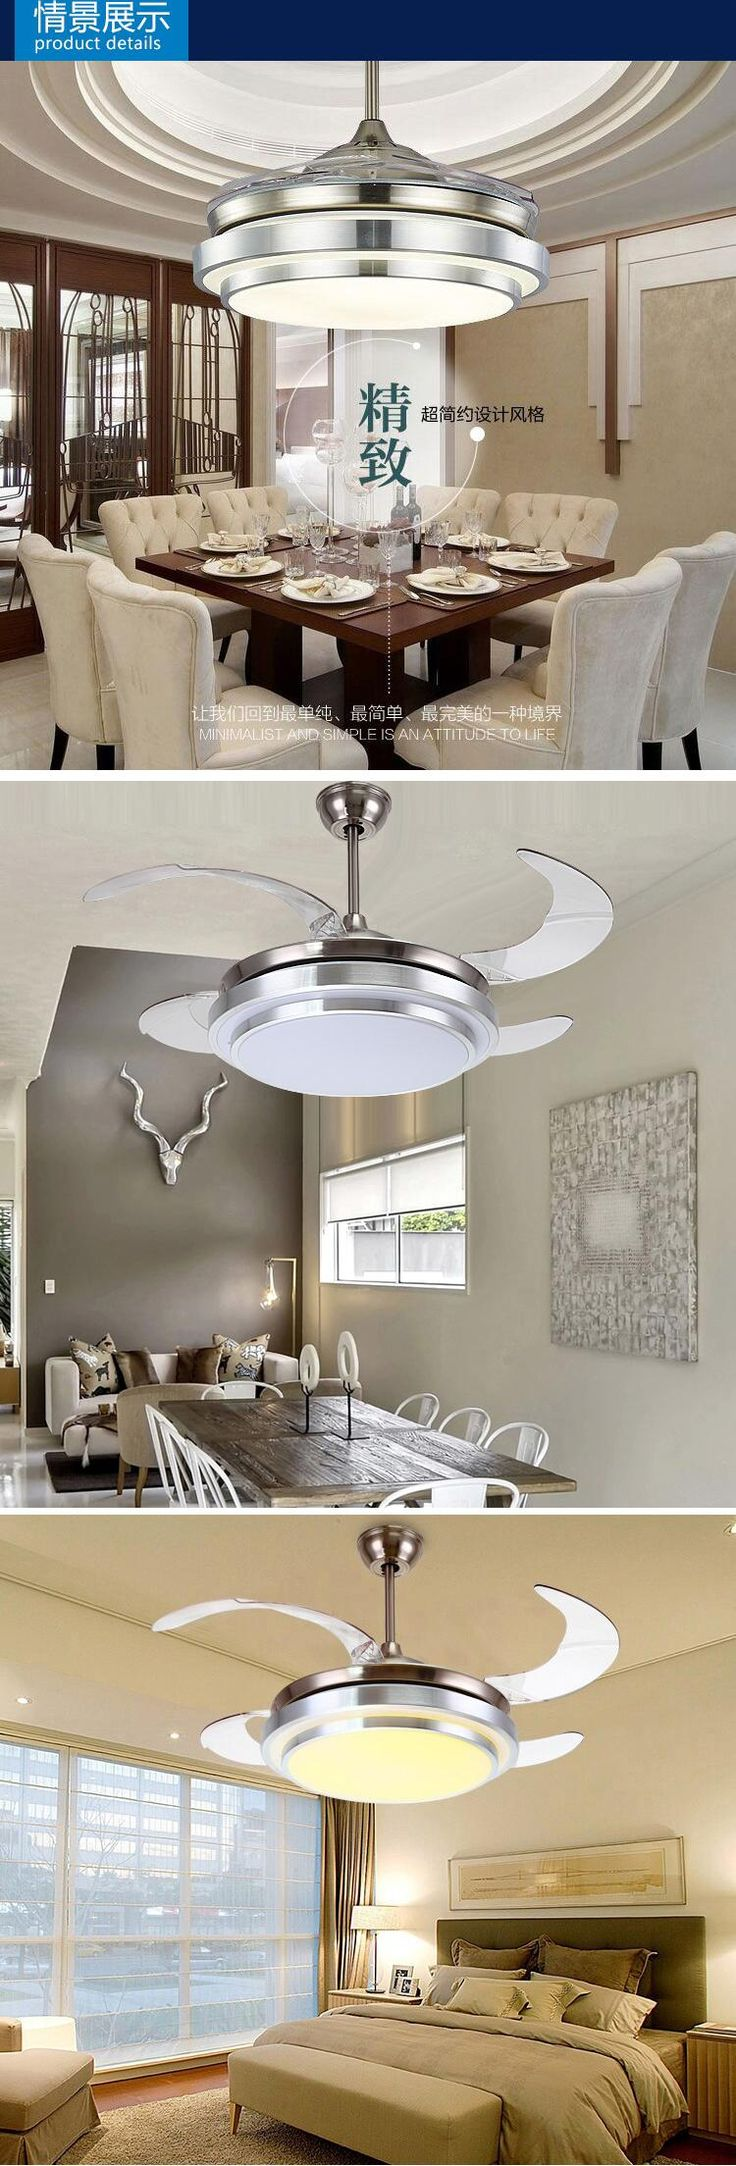 2016 ultra quiet ceiling fan 100-240v invisible ceiling fans modern fan lamp for living room, european ceiling lights with lights from ok360, $255.08 | DHgate Mobile